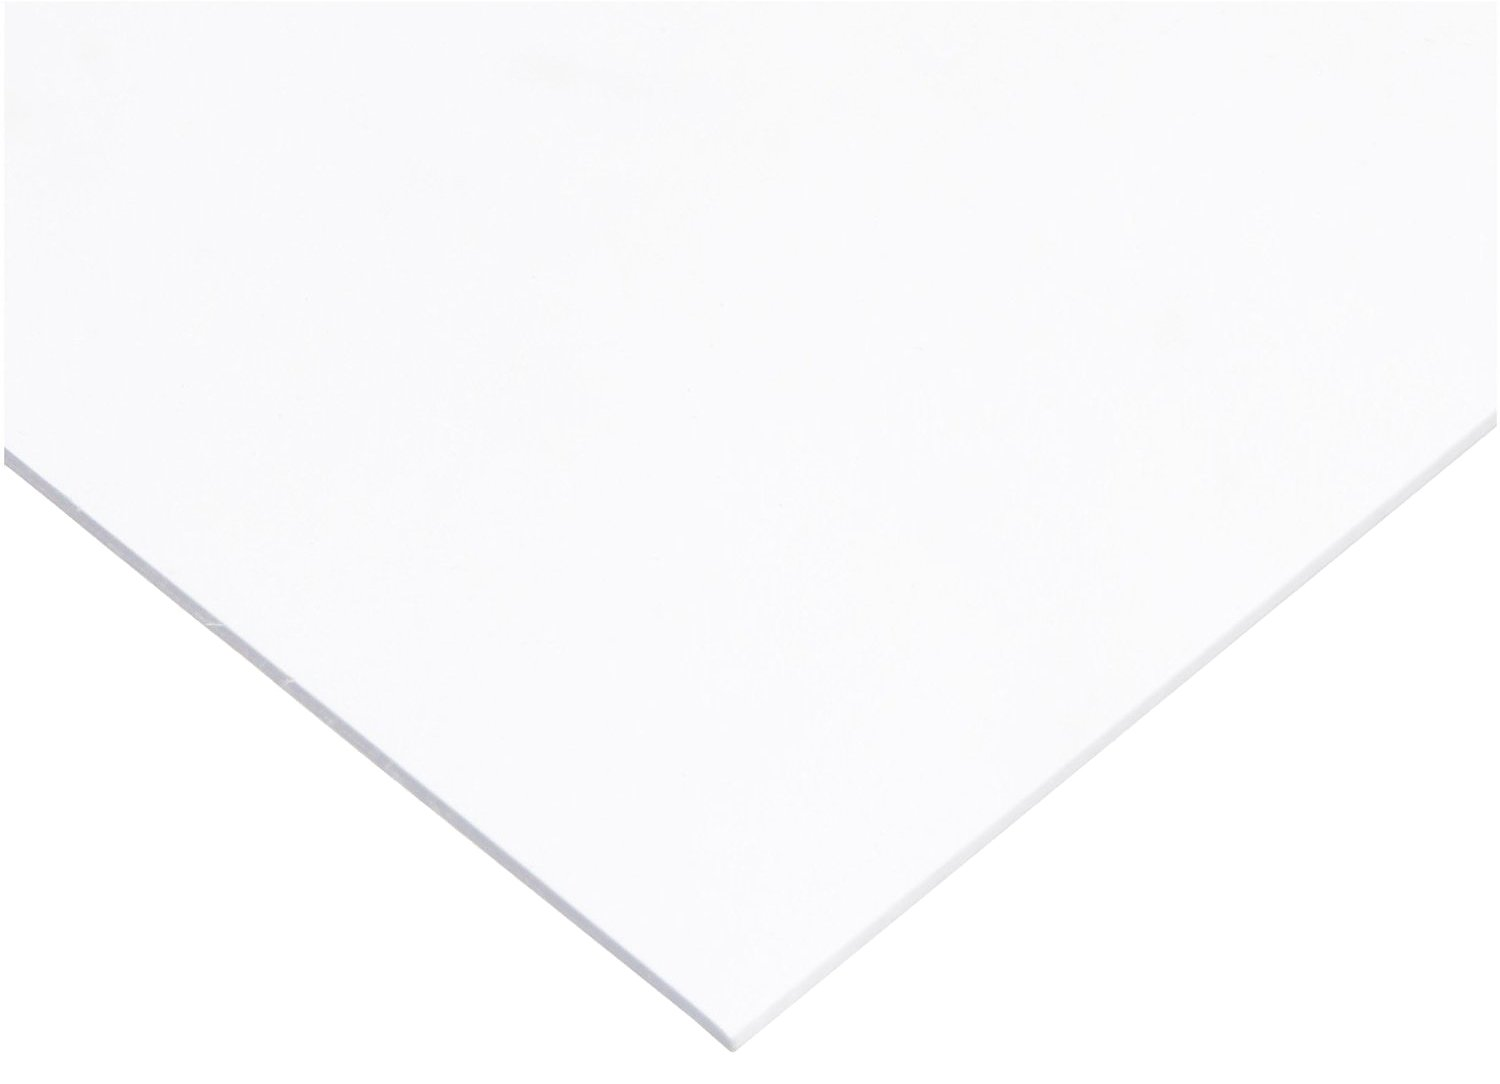 PVC (Polyvinyl Chloride) Shim Stock, Flat Sheet, White, 0.025'' Thickness, 10'' Width, 20'' Length (Pack of 10) by Small Parts